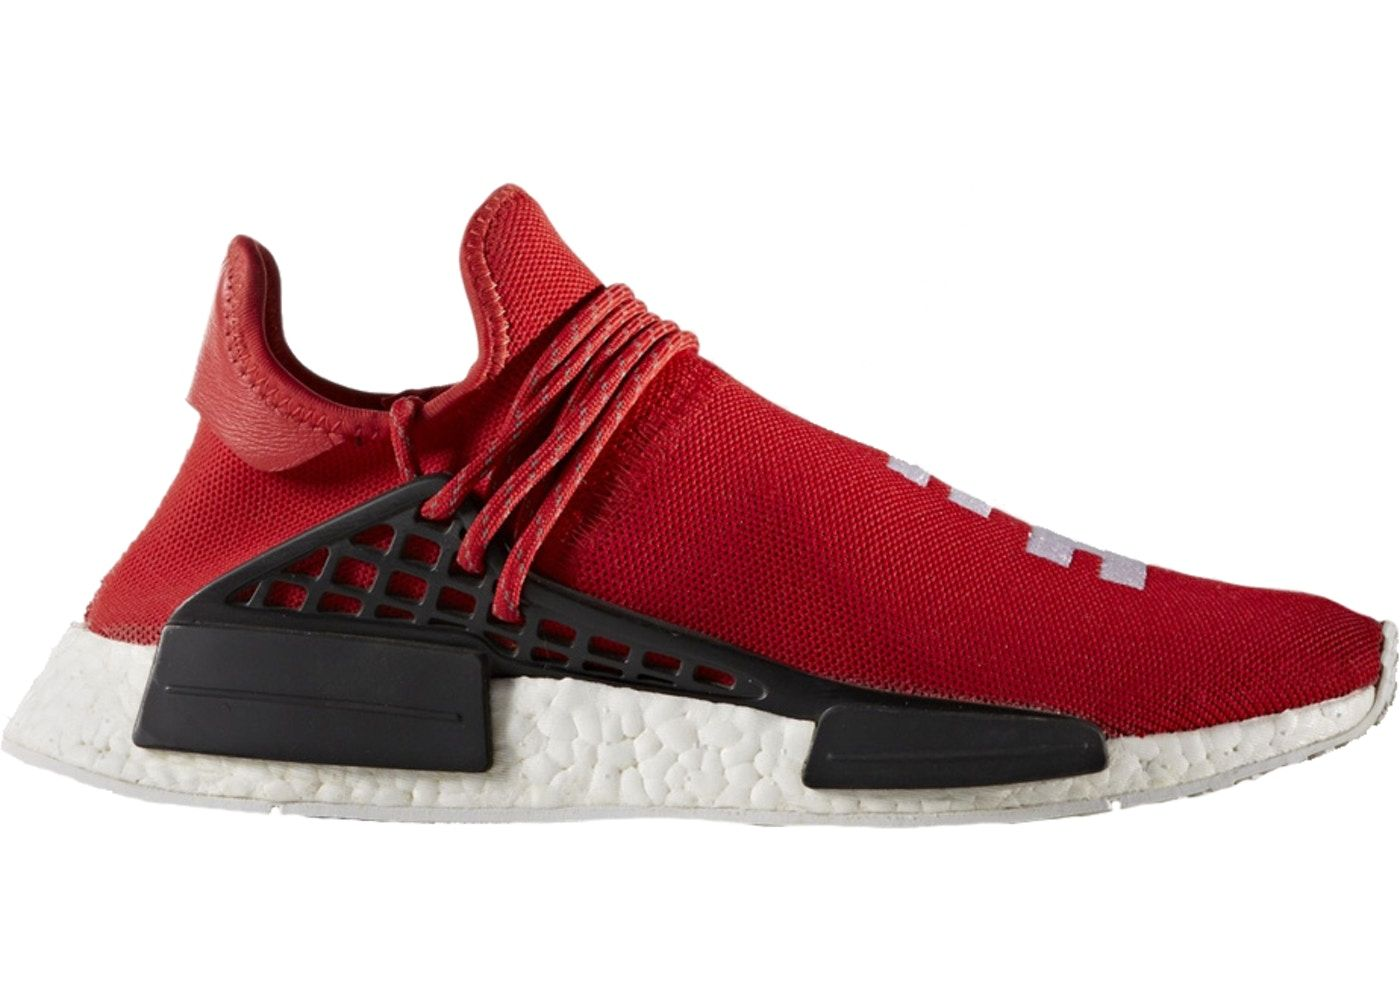 brand new 0fcb8 8439b adidas NMD HU Pharrell Human Race Scarlet | Shoes in 2019 ...